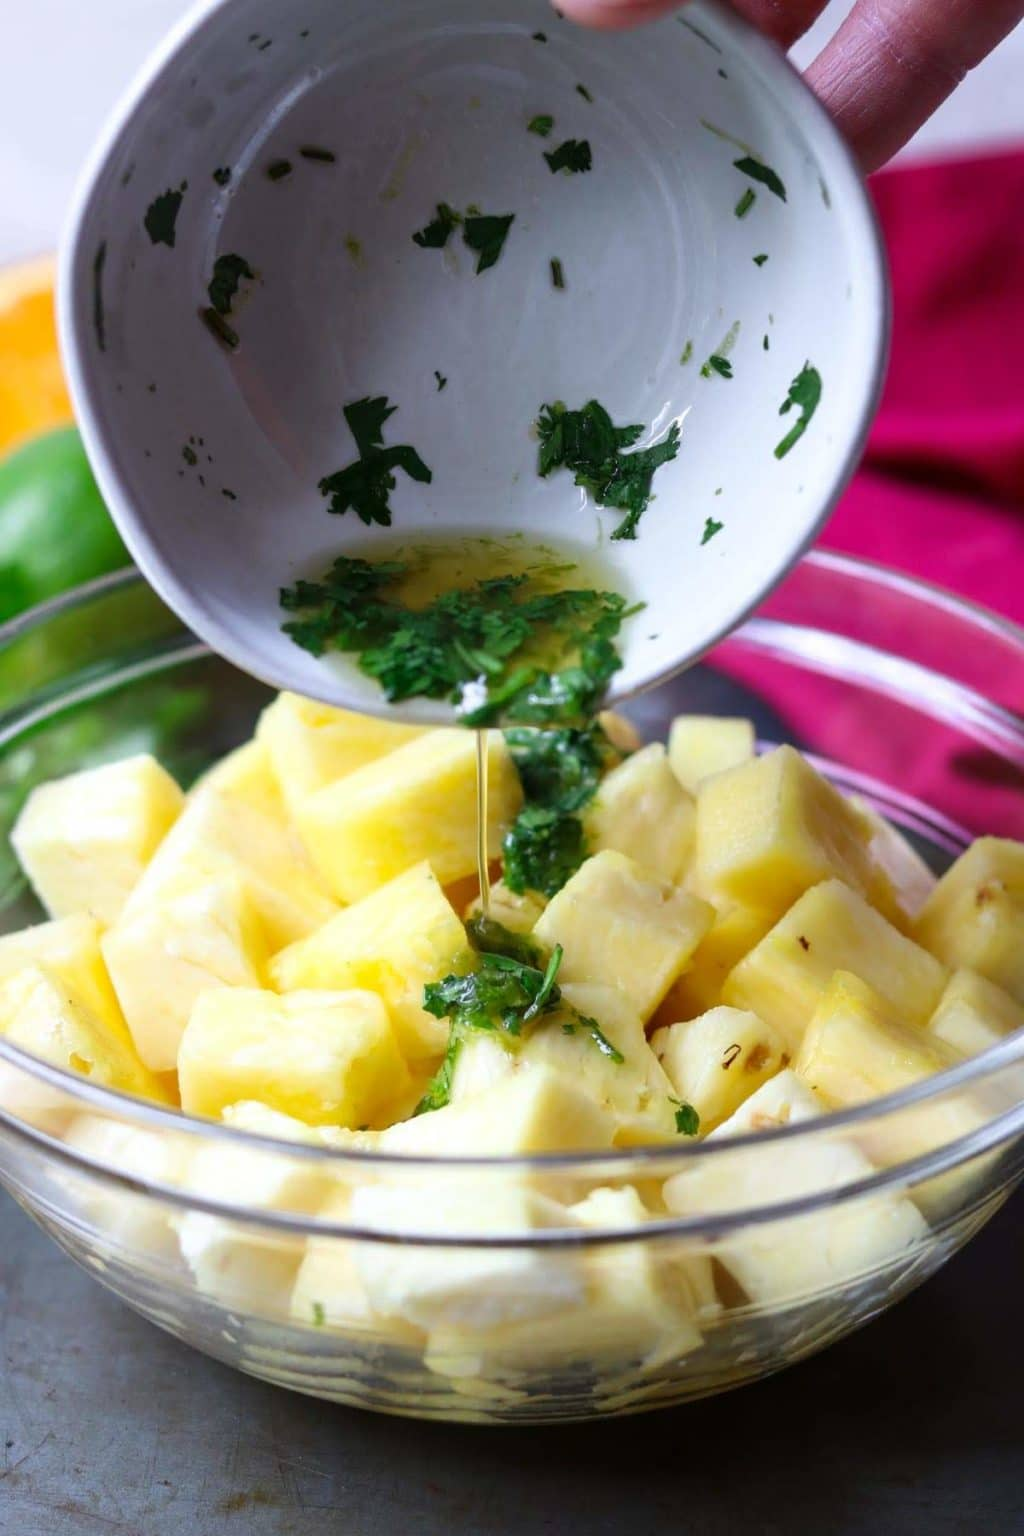 citrus herb glaze being poured over fresh cut pineapple